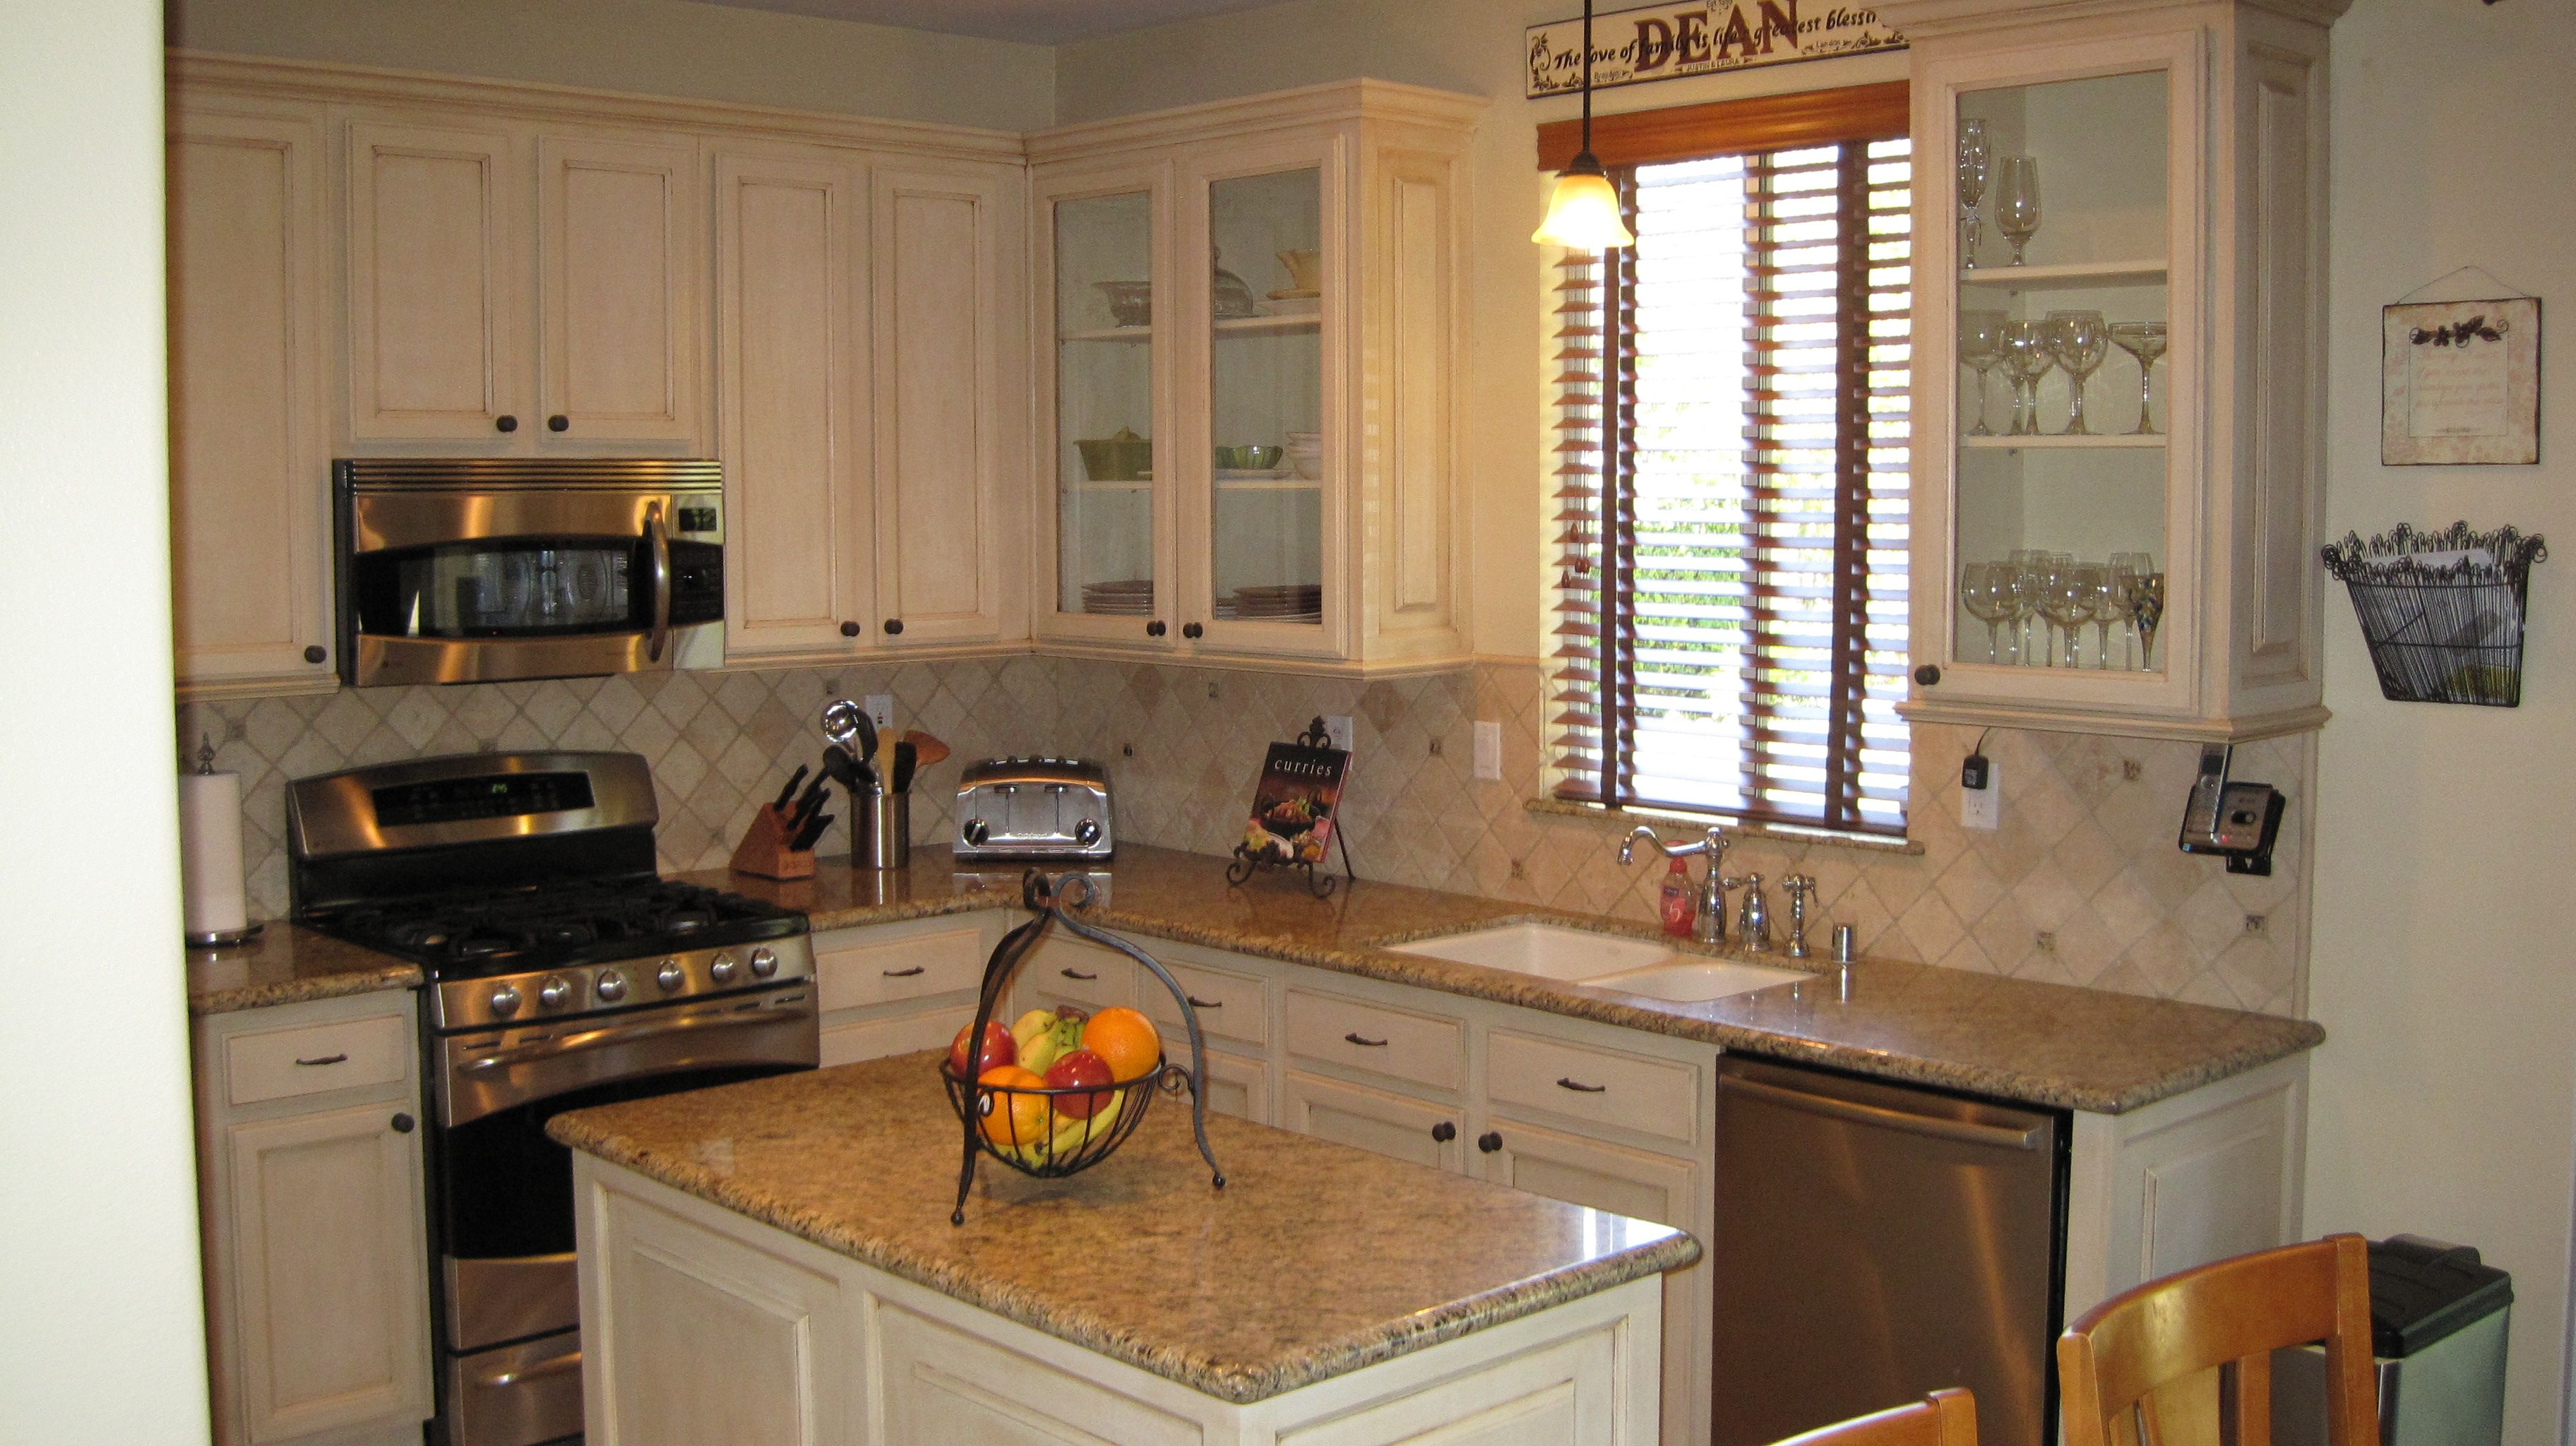 Easily Refinish Kitchen Cabinets  Wow Blog